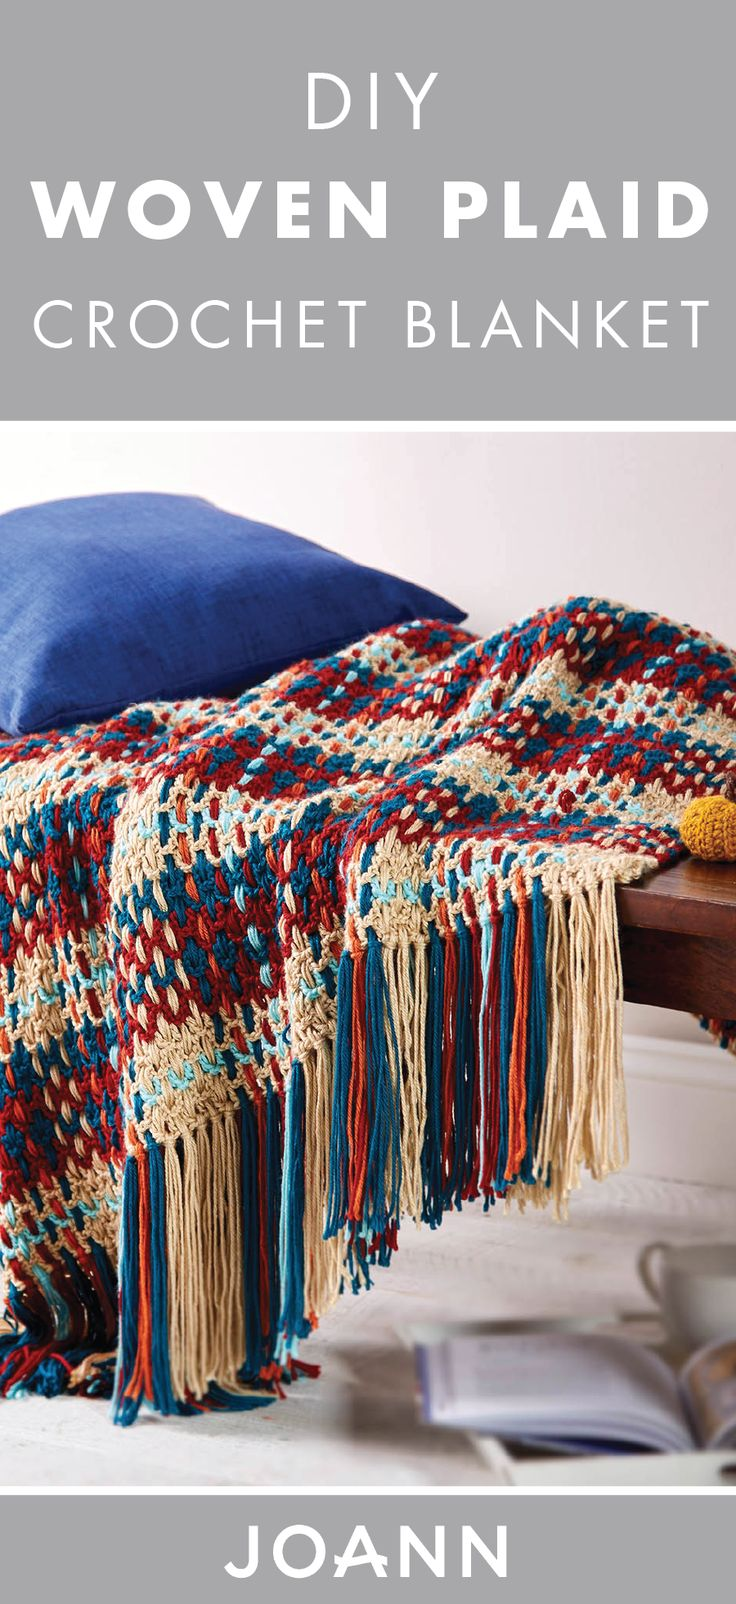 Love the look of this DIY Woven Plaid Crochet Blanket? Check out the full tutorial from JOANN to see how you can put your crochet skills to use to make it for your living room. Cozy and stylish, what more could you want?!